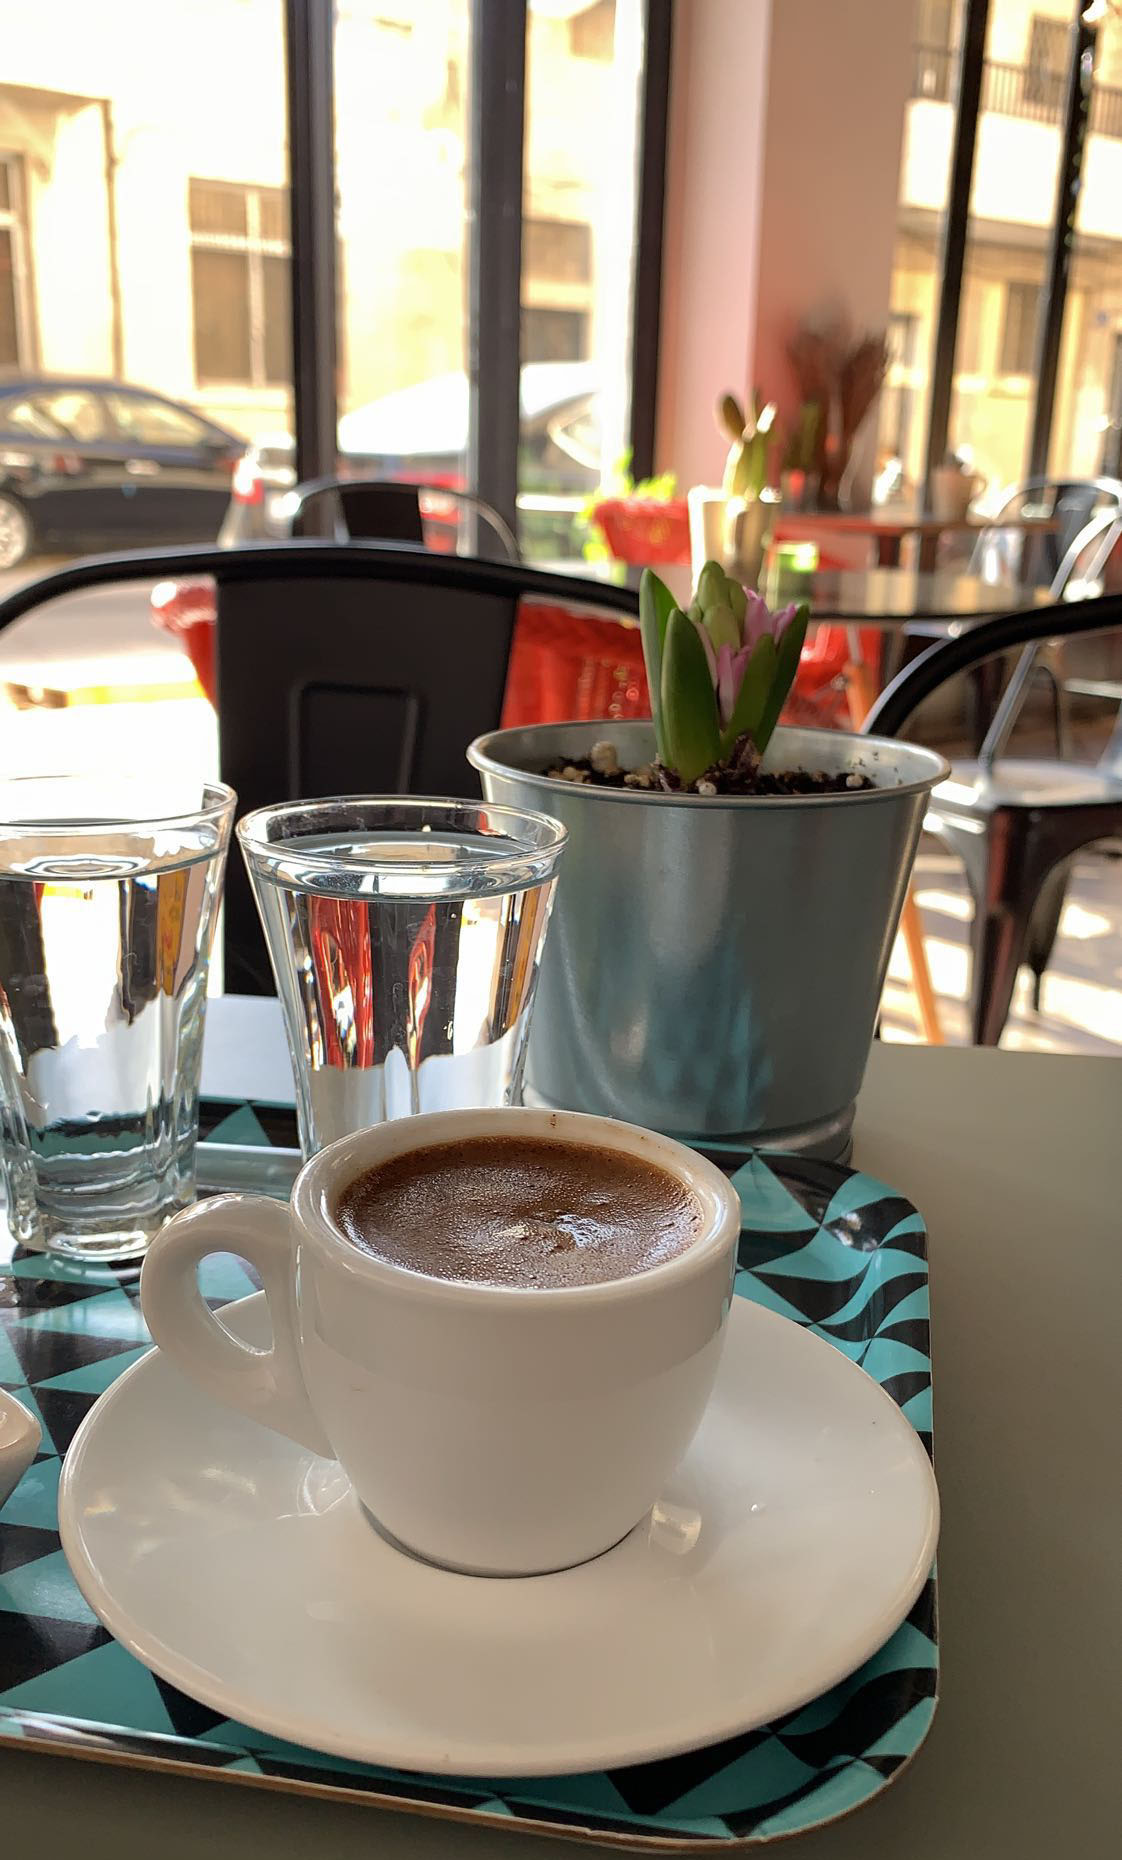 There have also been a lot of great drinks, such as many different types of tea. We have also fallen in love with Turkish coffee! This one is from Rumi Café in Weibdeh. Photo credit: Arguin, 2019